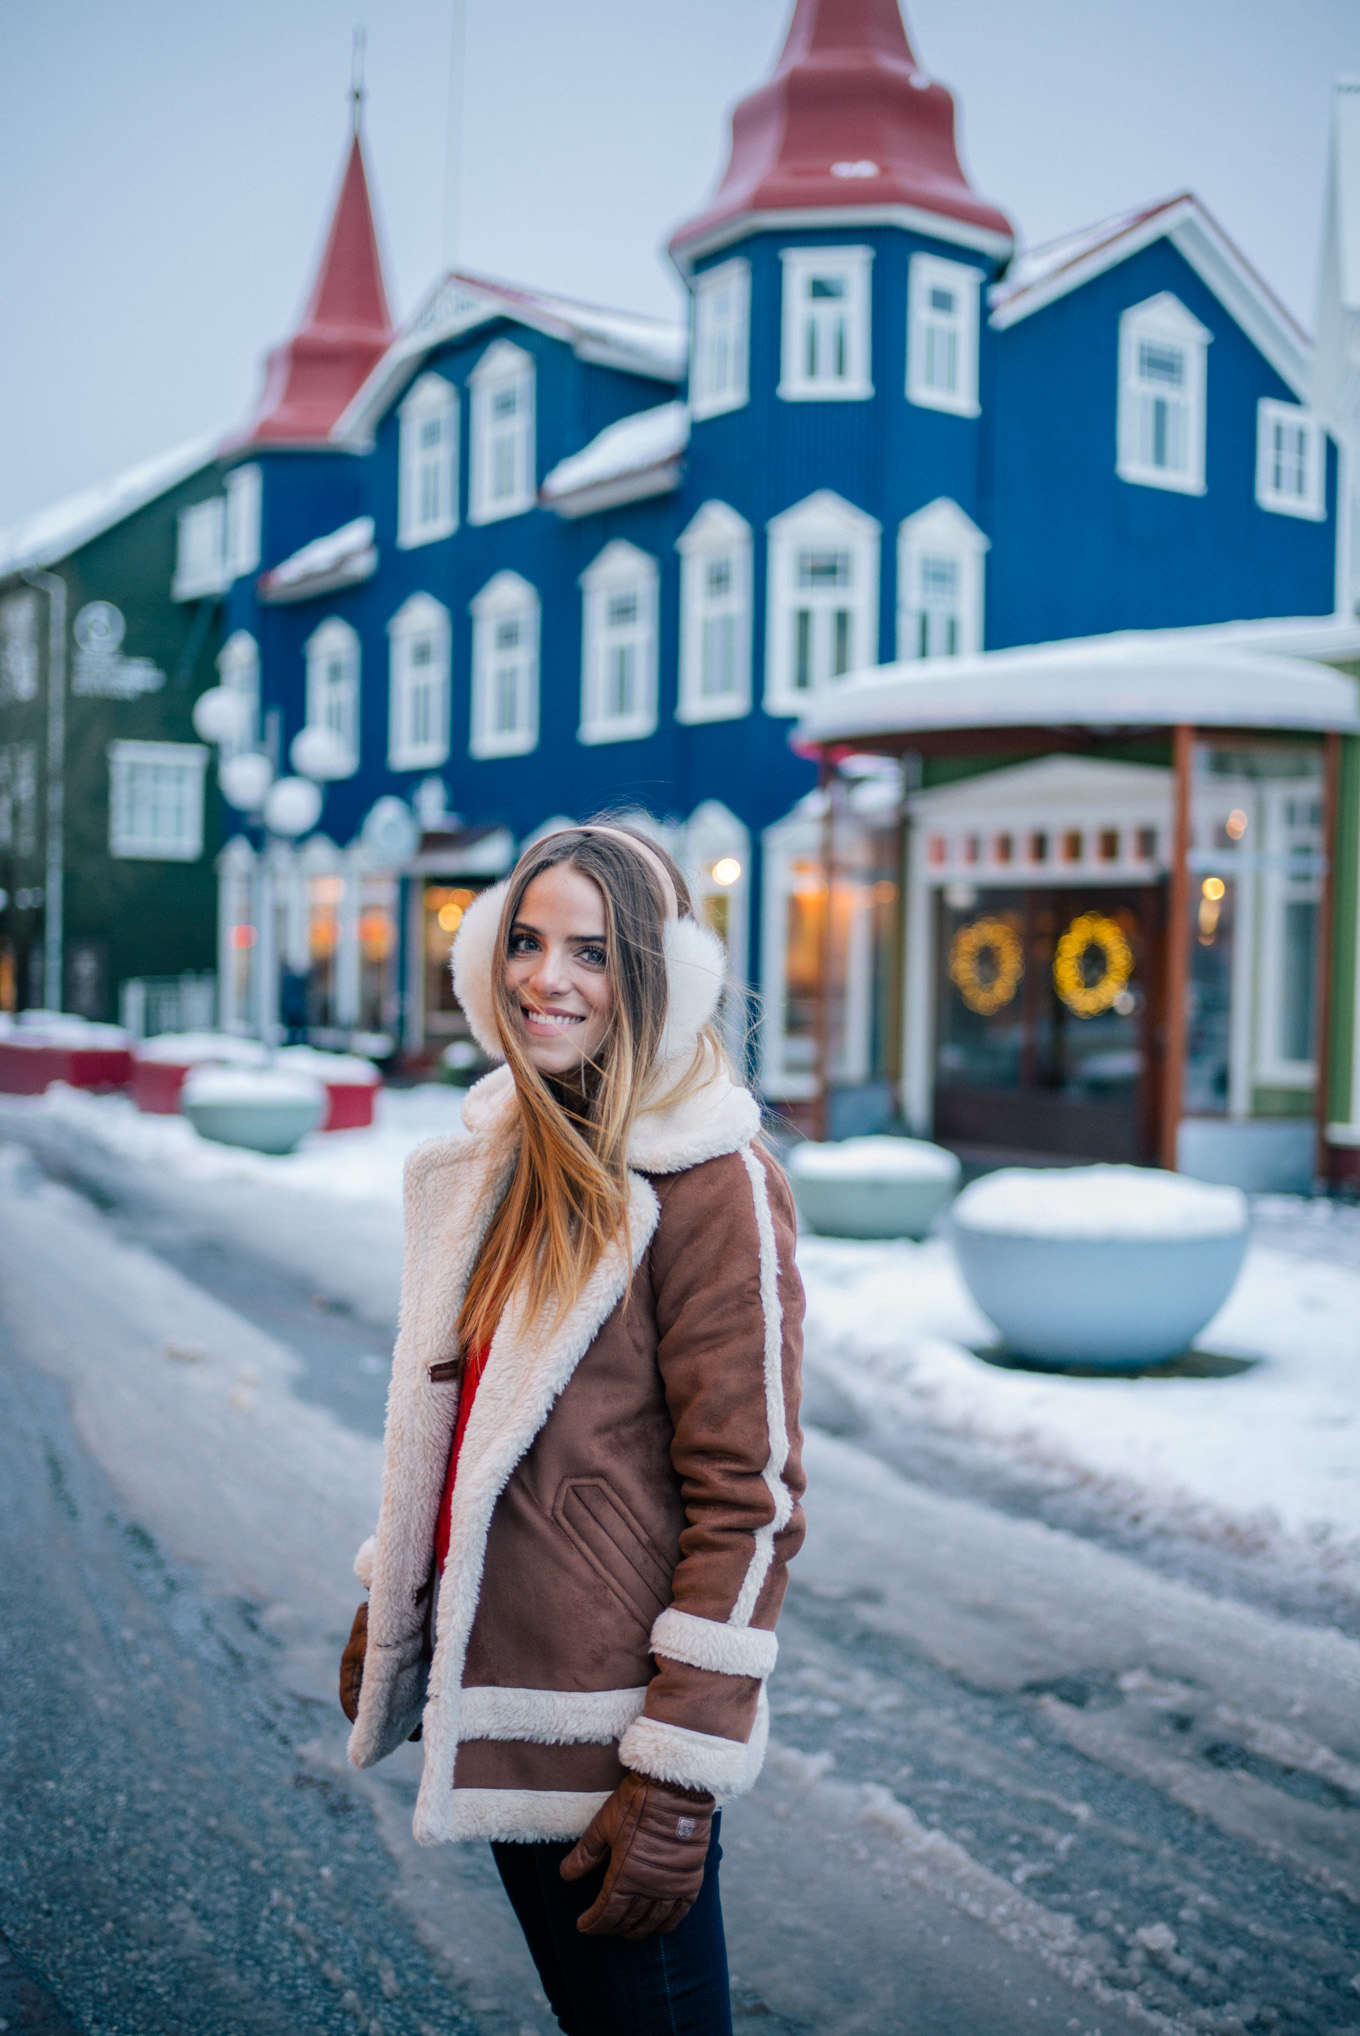 gmg-iceland-itinerary-winter-1006878